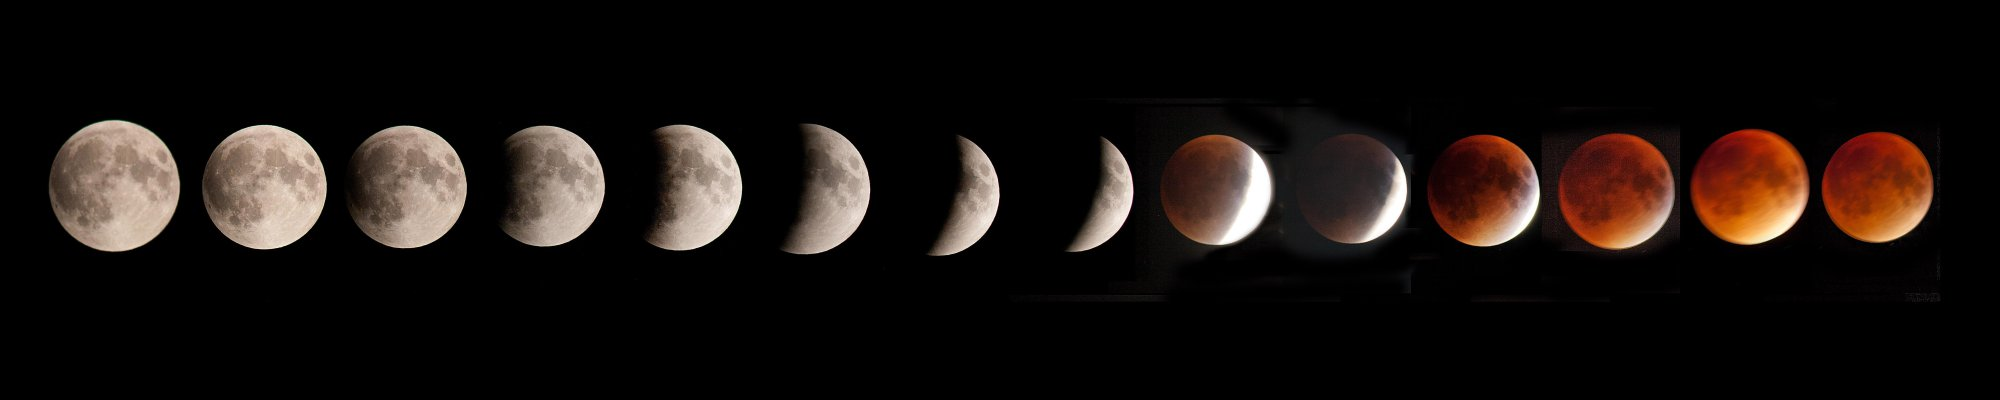 2015-lunar-eclipse-sequence-1big